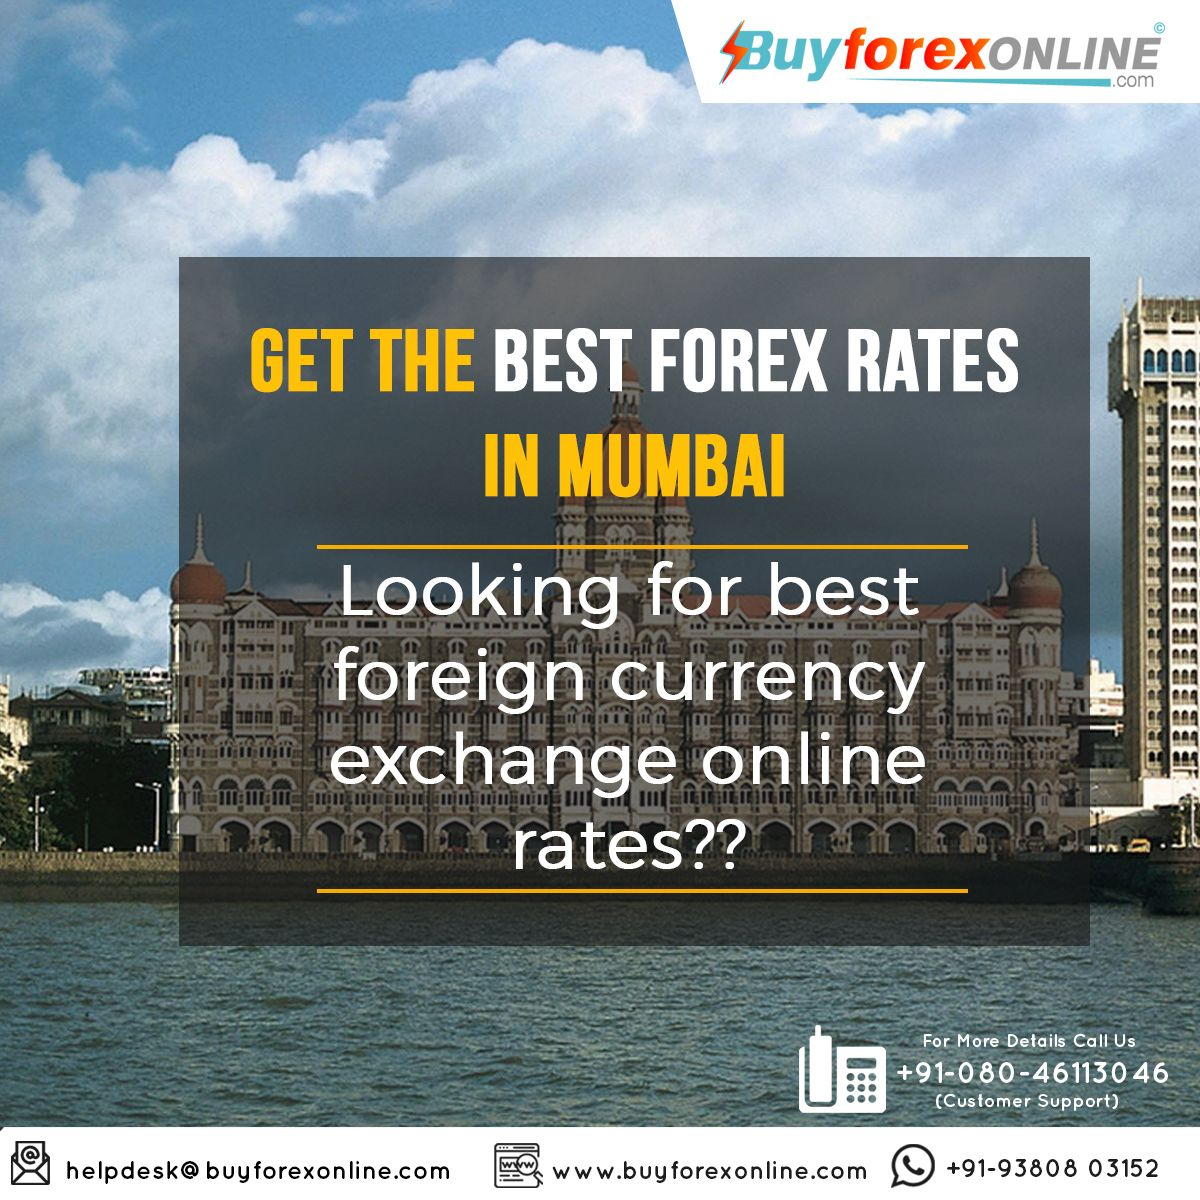 Cheapest forex rates in mumbai